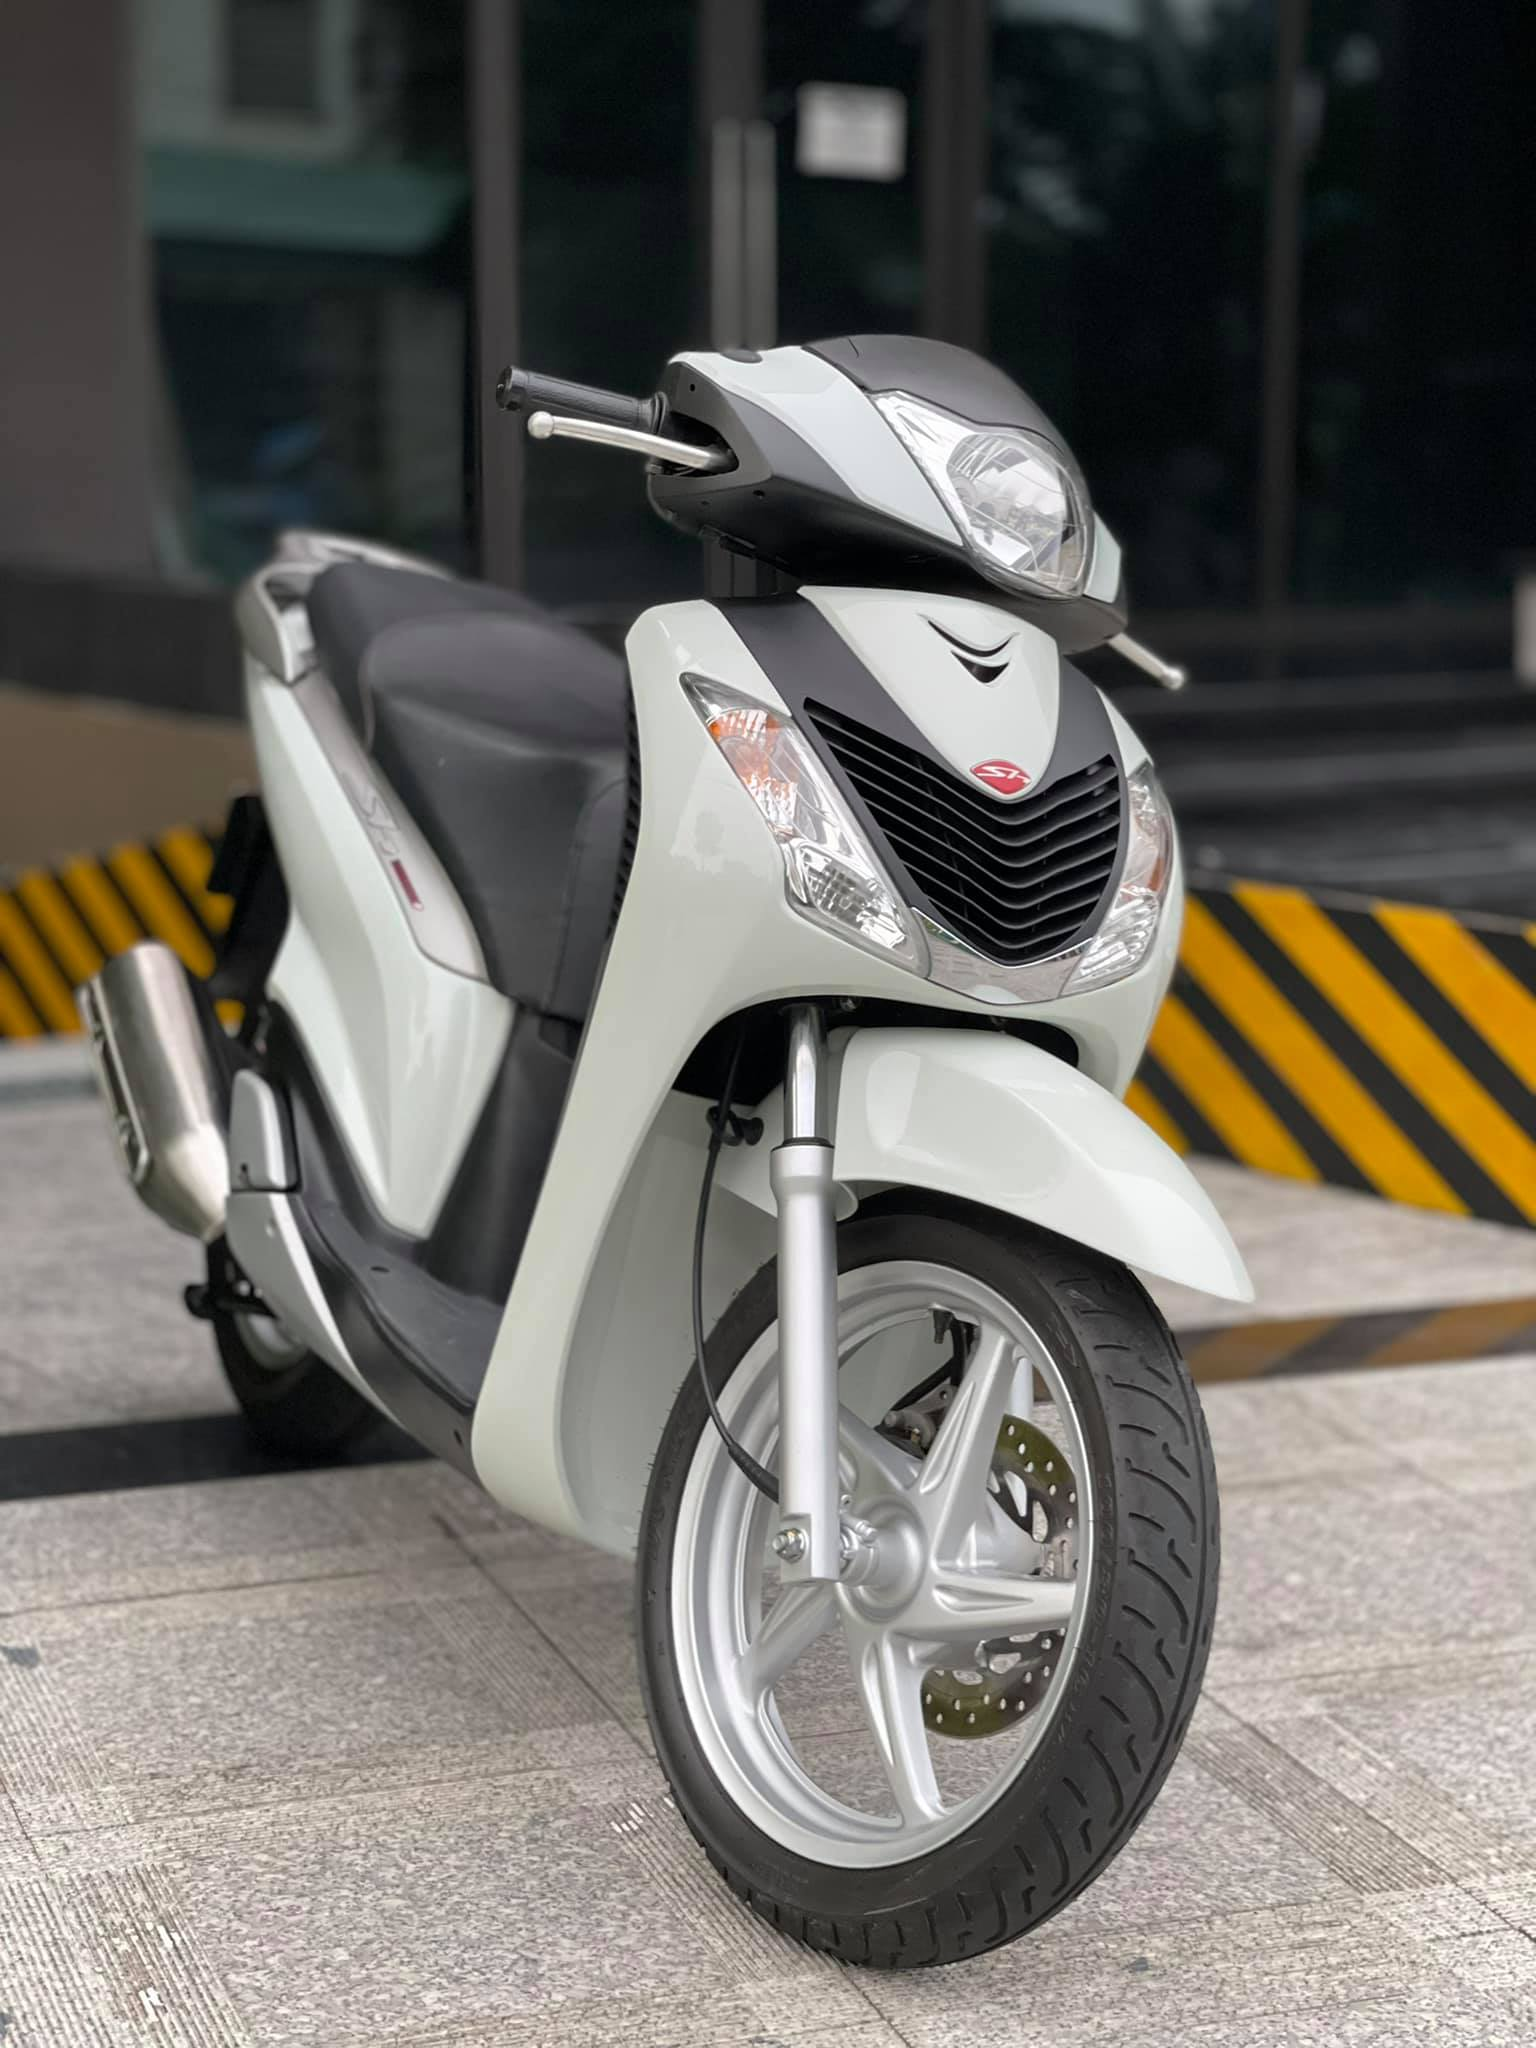 Old Honda SH 150i for sale for 1 billion dong, the car found a new owner after only 4 days 1